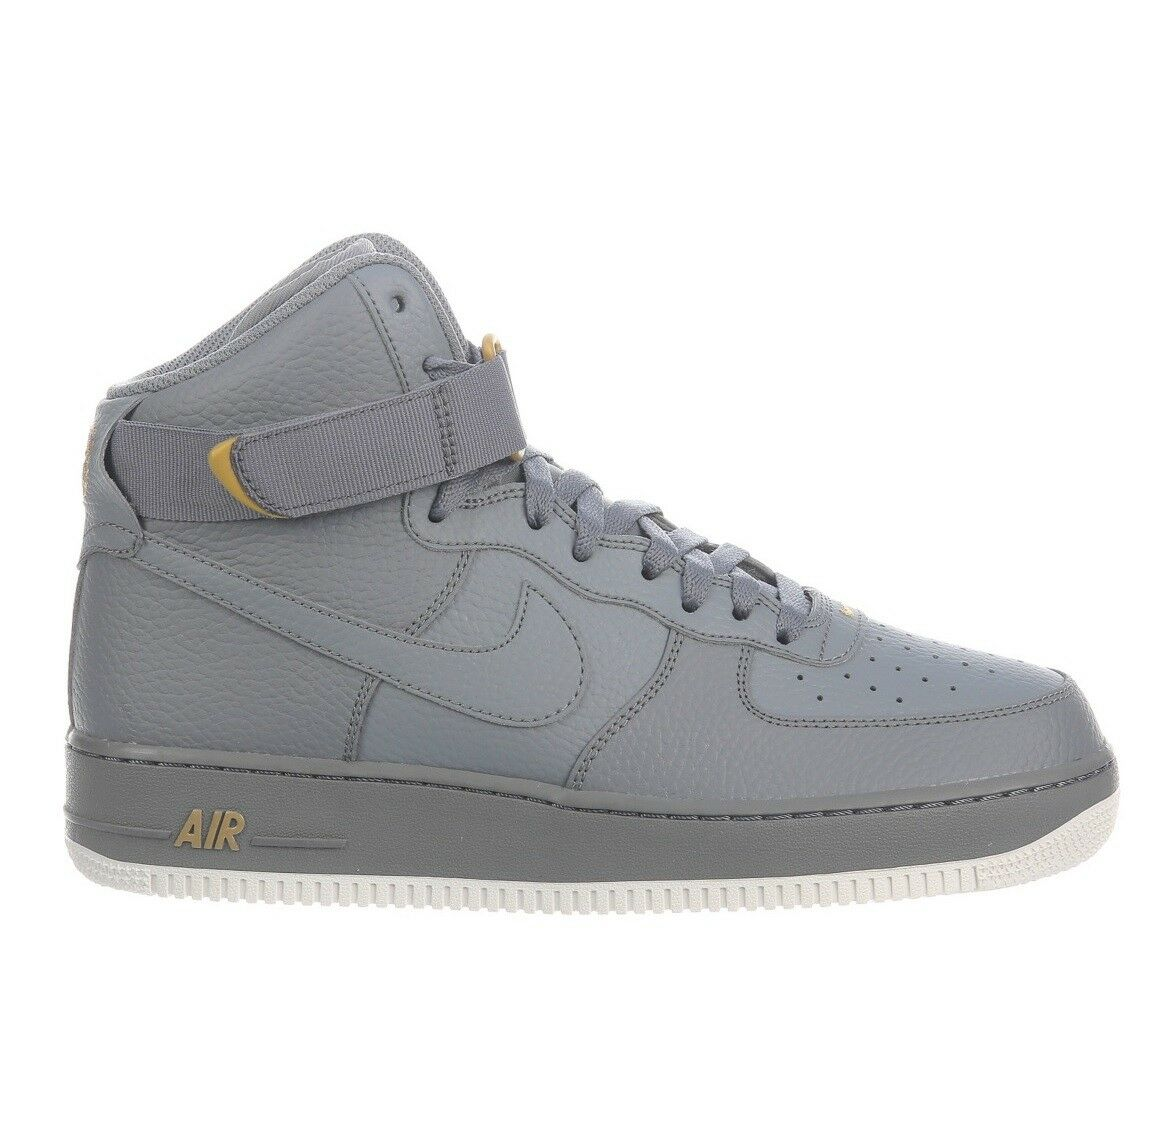 Nike Air Force 1 High '07 Mens 315121-049 Cool Grey Gold Leather Shoes Size 12.5